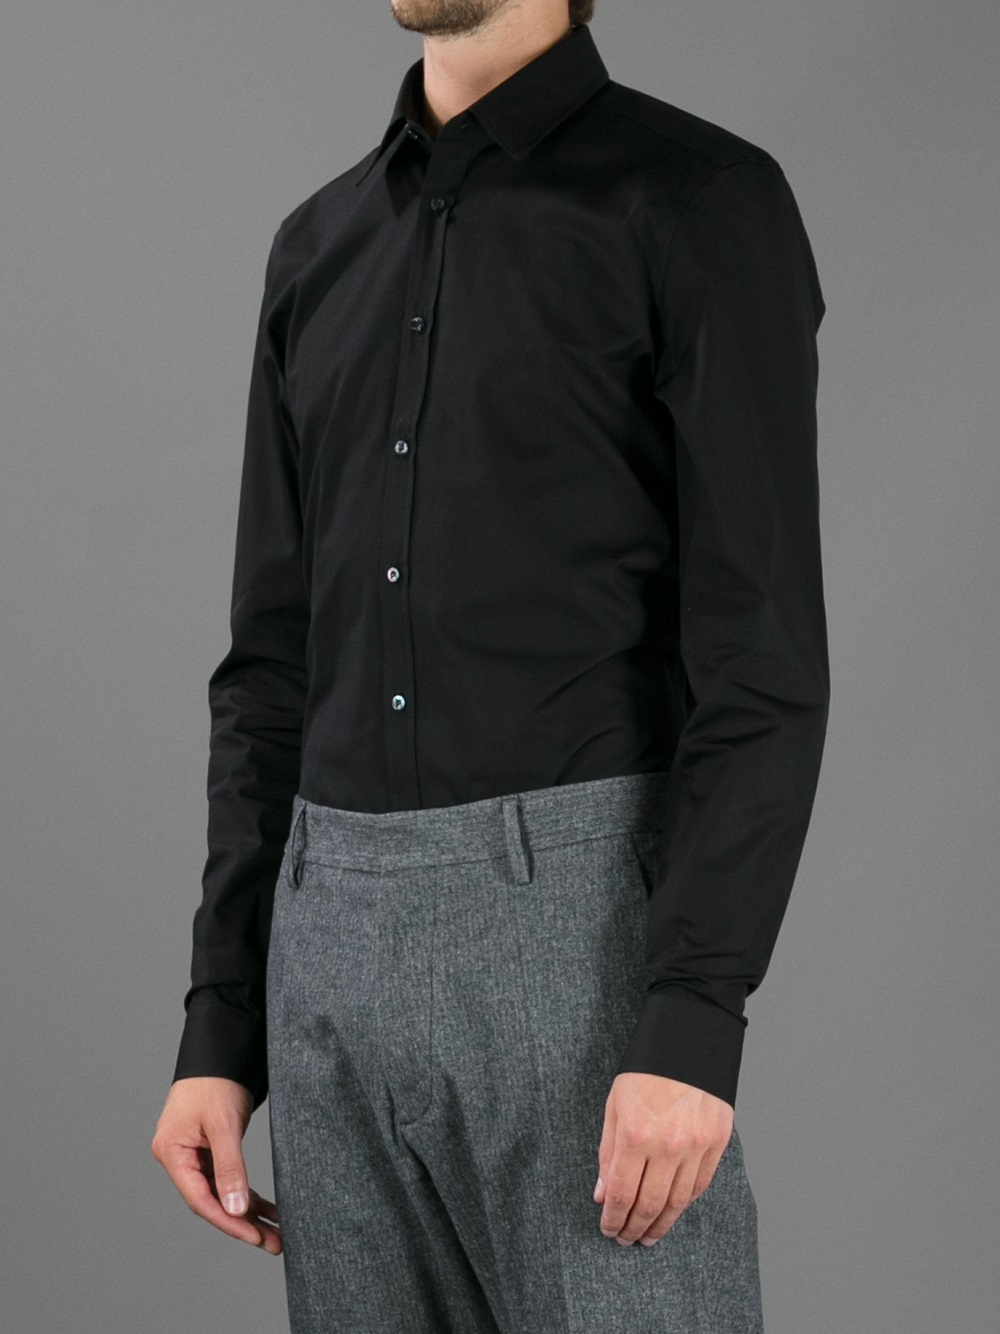 Lyst Gucci Button Down Shirt In Black For Men